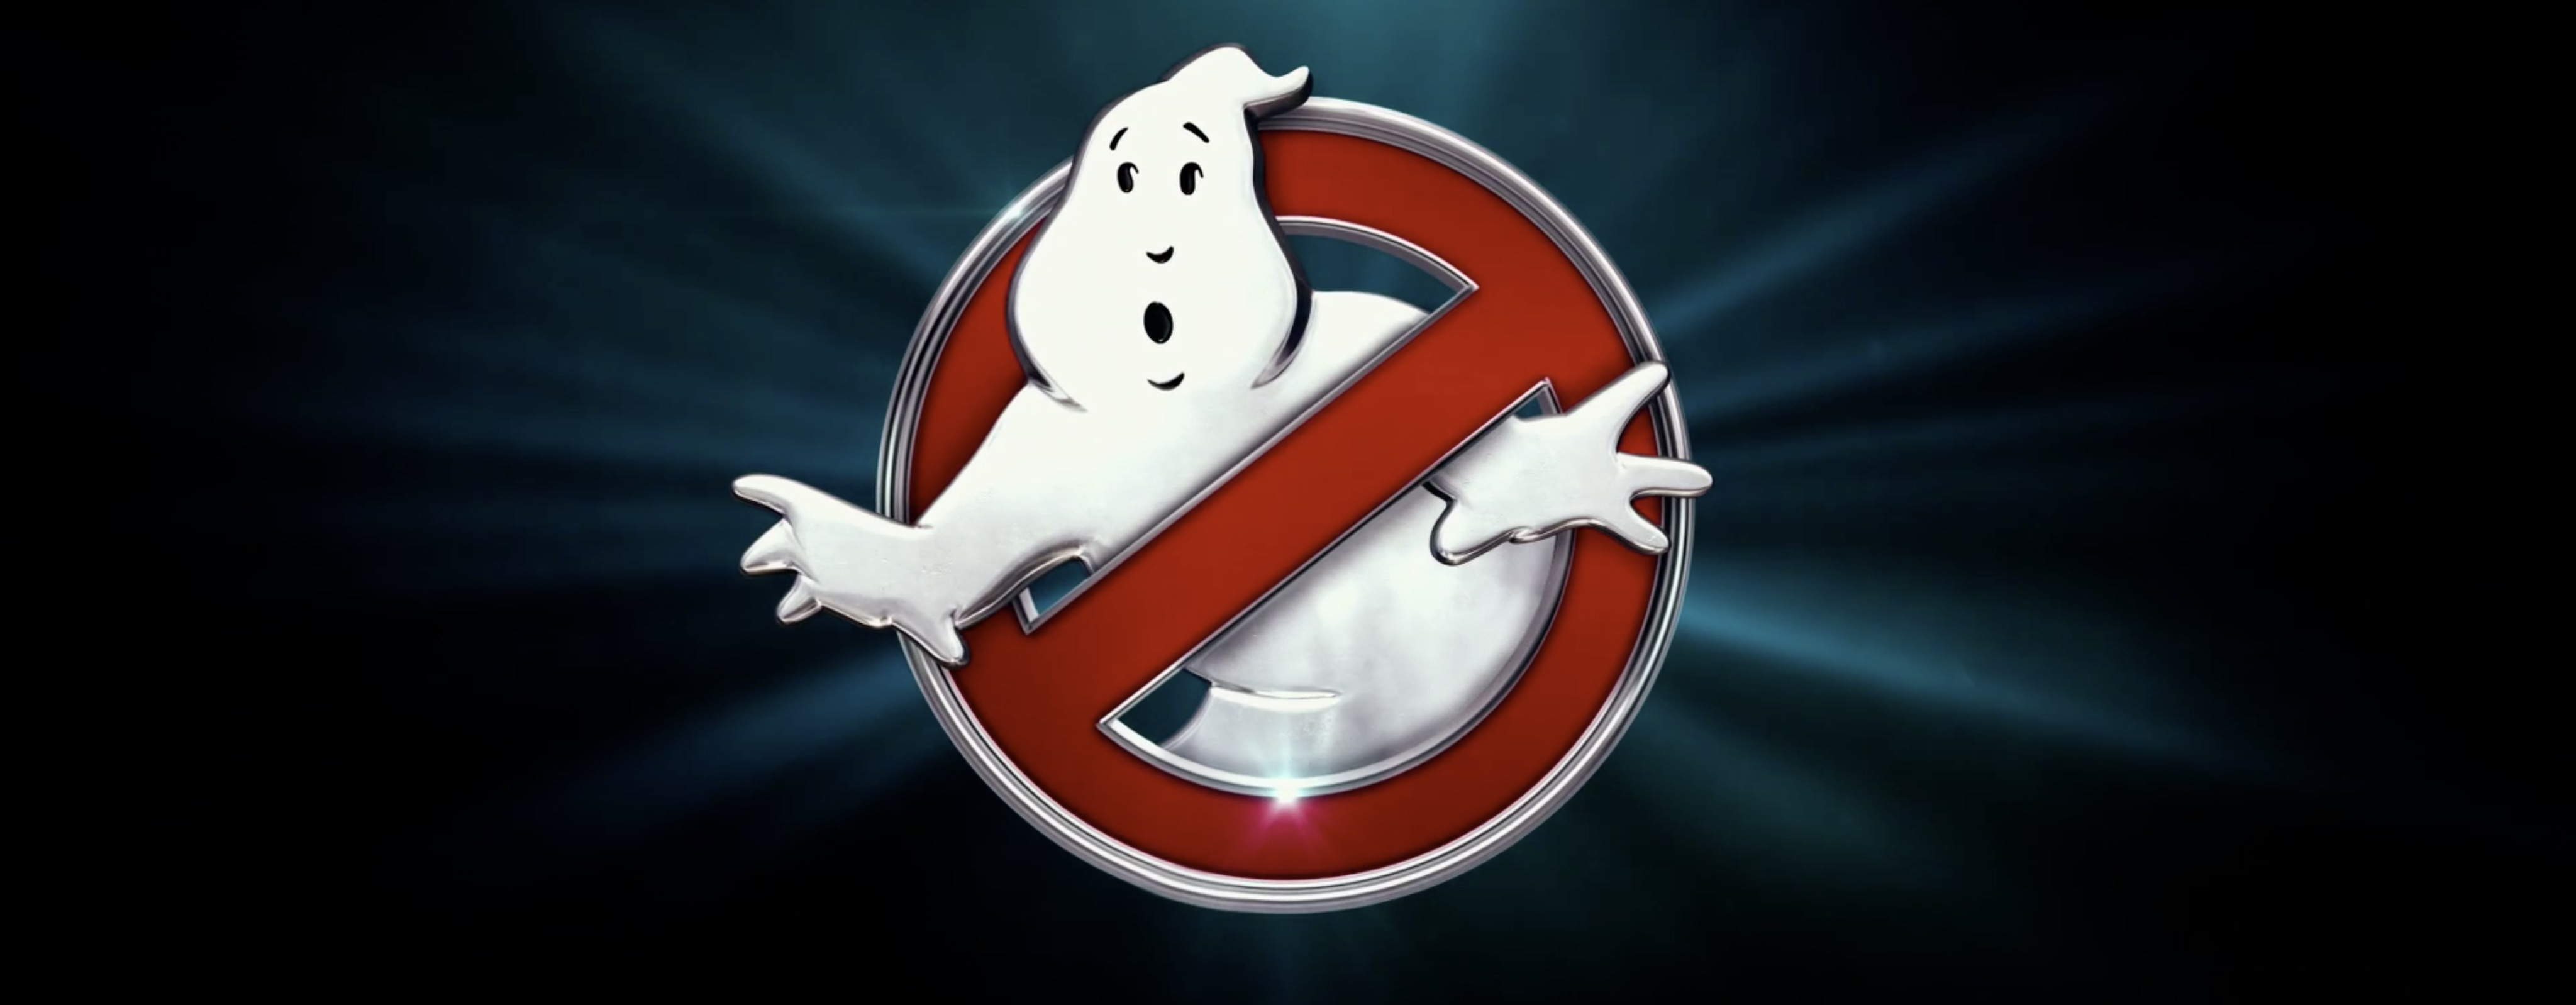 Interesting new detail on the ghostbusters logo spook rowan